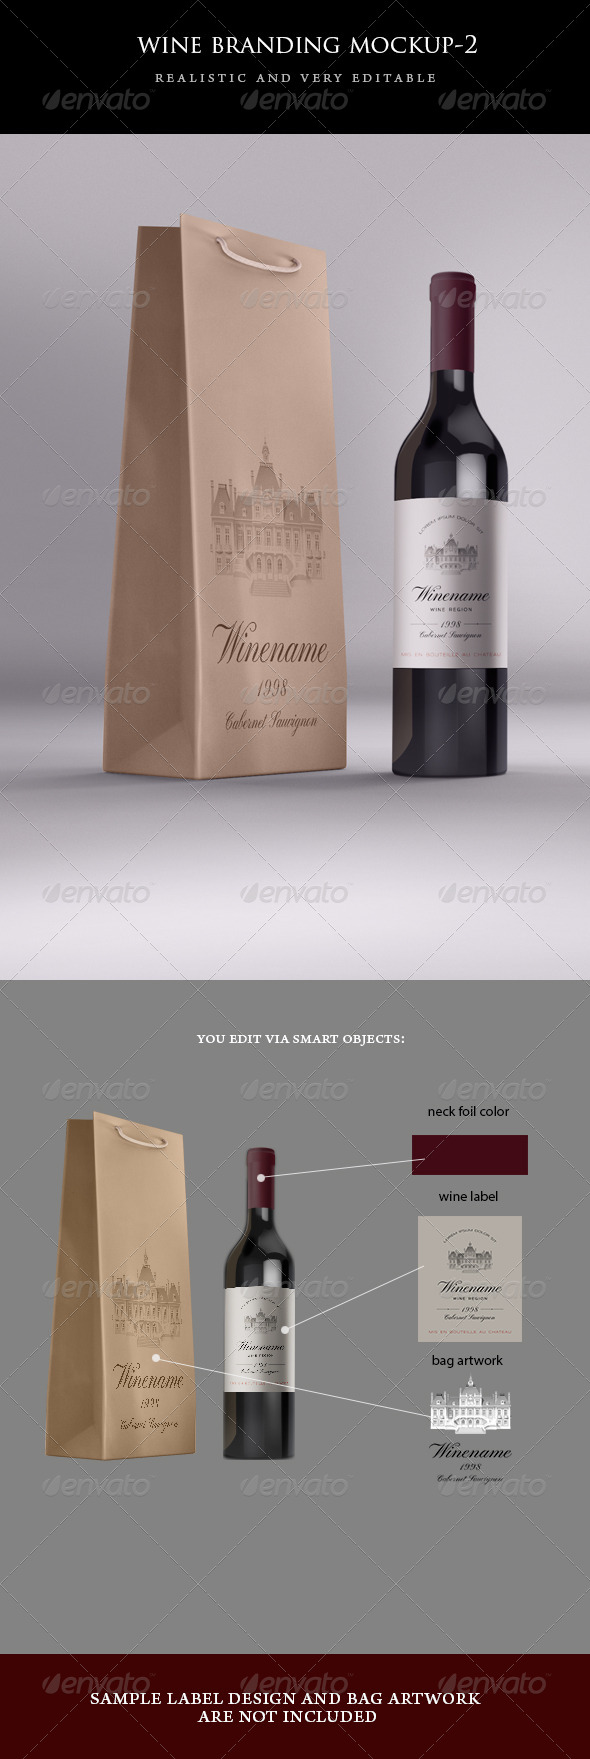 Wine Bag and Bottle Mockup